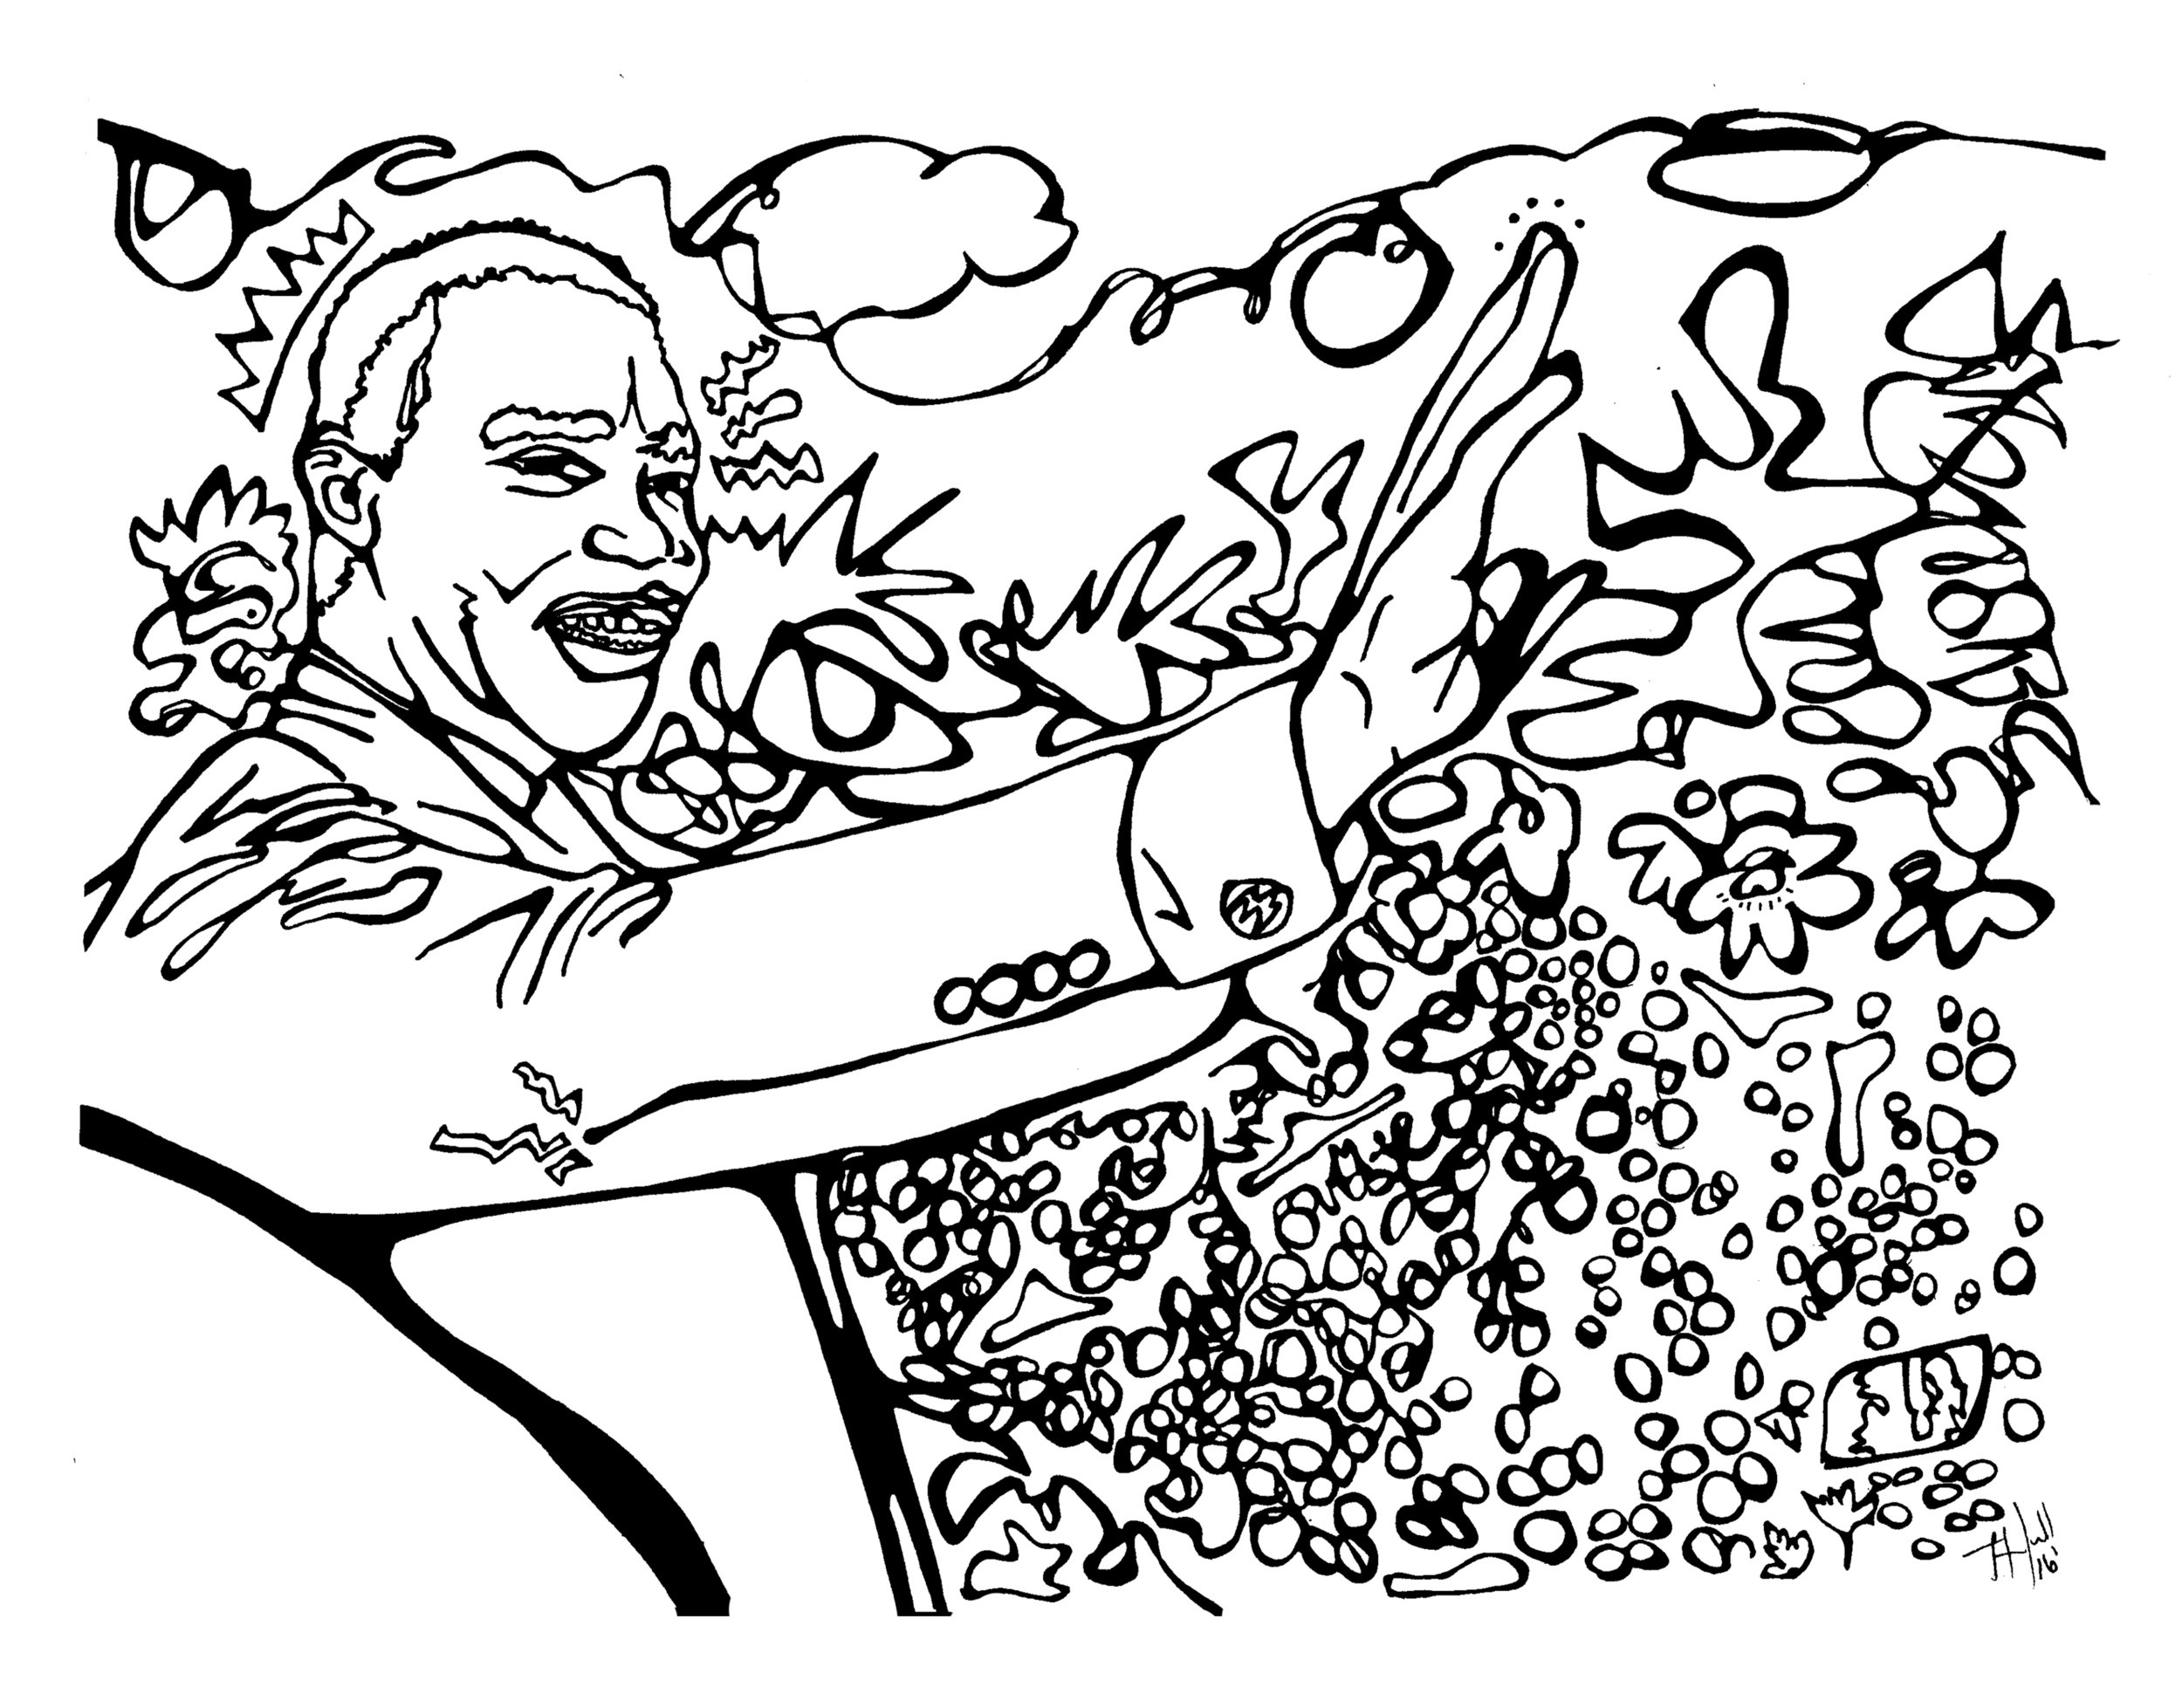 Color Me Tone- Coloring Book - AA - PG 8.jpg